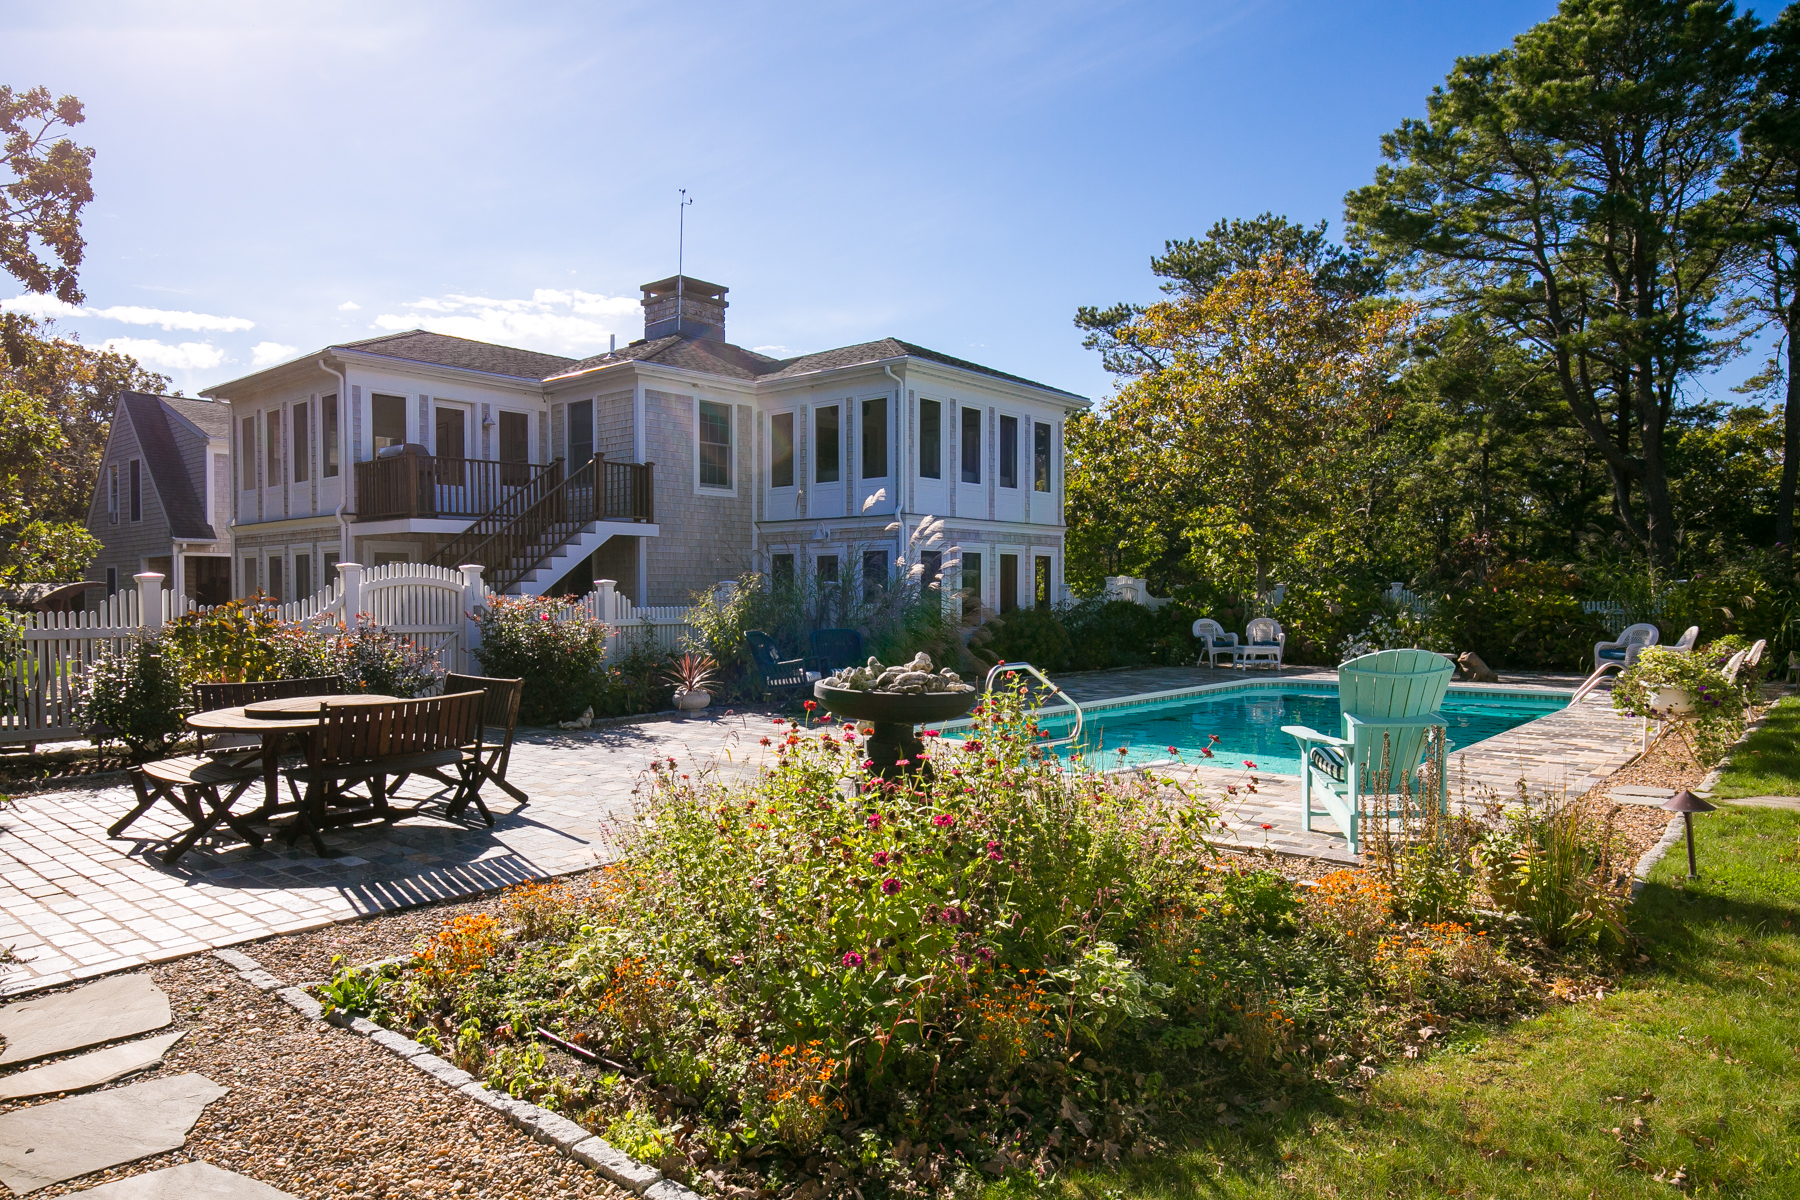 Maison unifamiliale pour l Vente à Custom Chappy Home with Pool 7 Chapel Ave Edgartown, Massachusetts, 02539 États-Unis